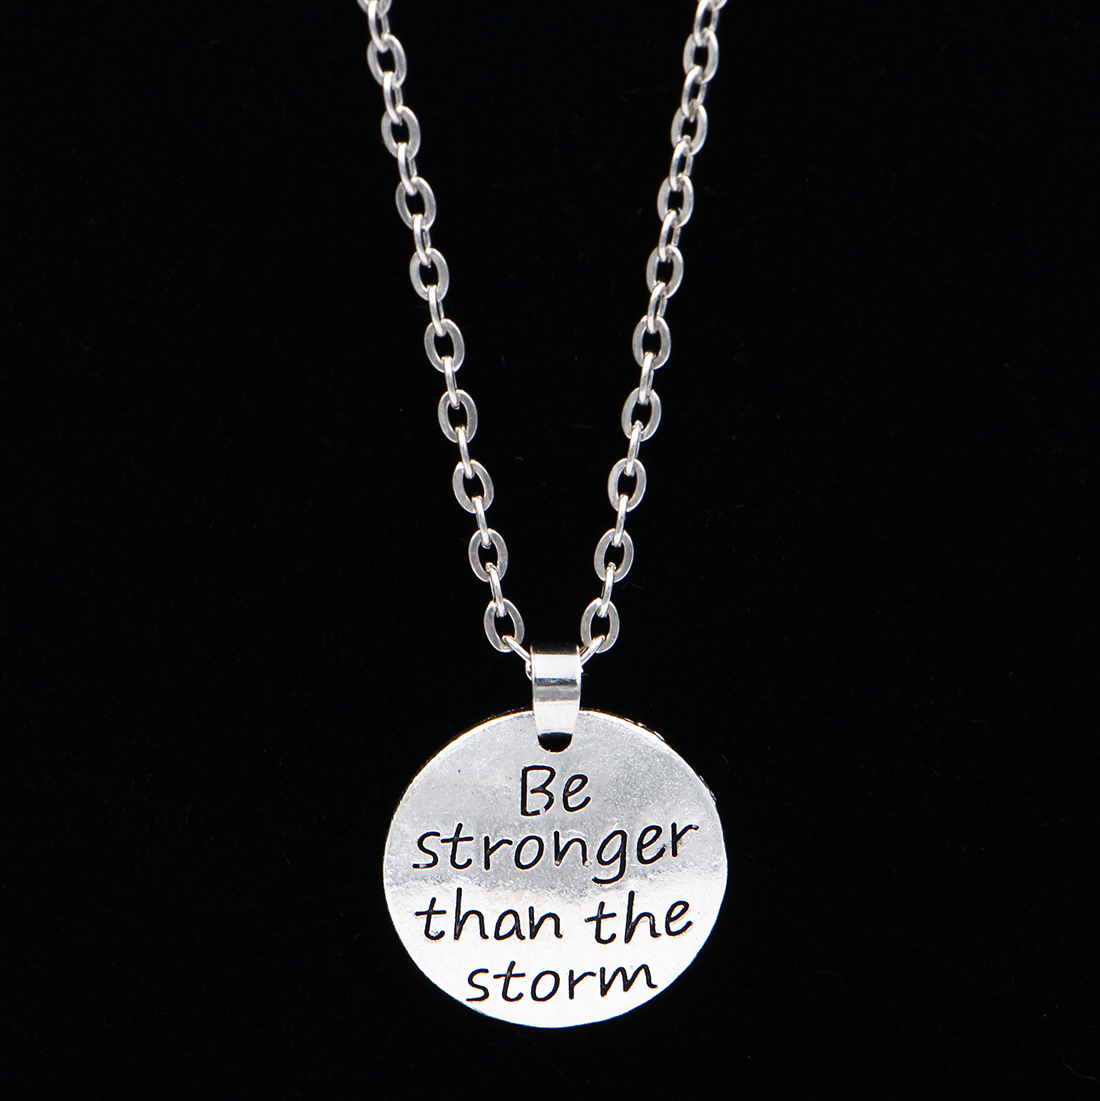 XCHARMS 66DIY Store 2017 New Be stronger than the storm Lettering Round Pendant Necklace Chain Women Trendy Jewelry Gift